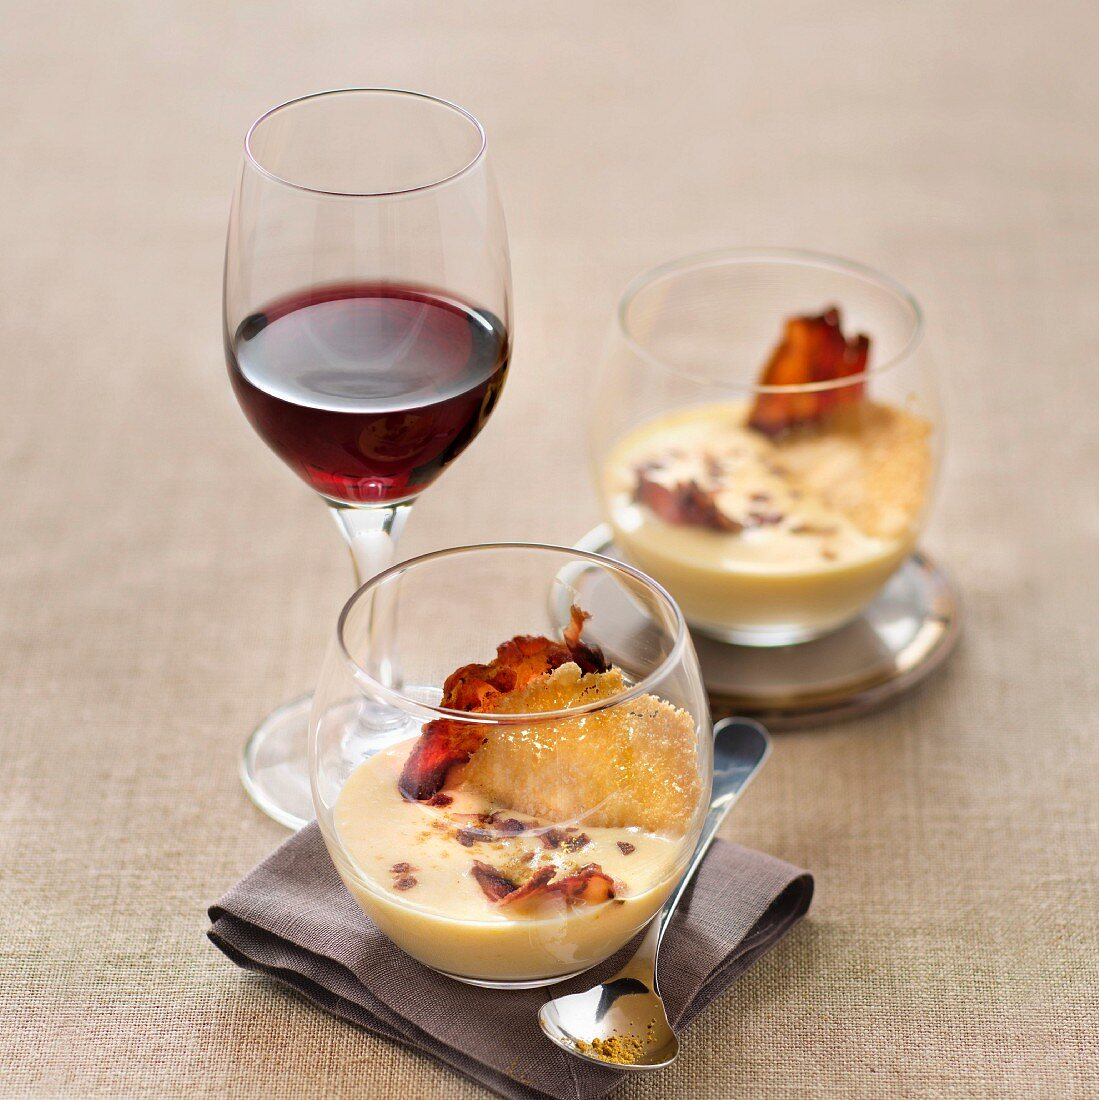 Jerusalem artichoke soup, bacon chips and parmesan tuile, glass of red wine